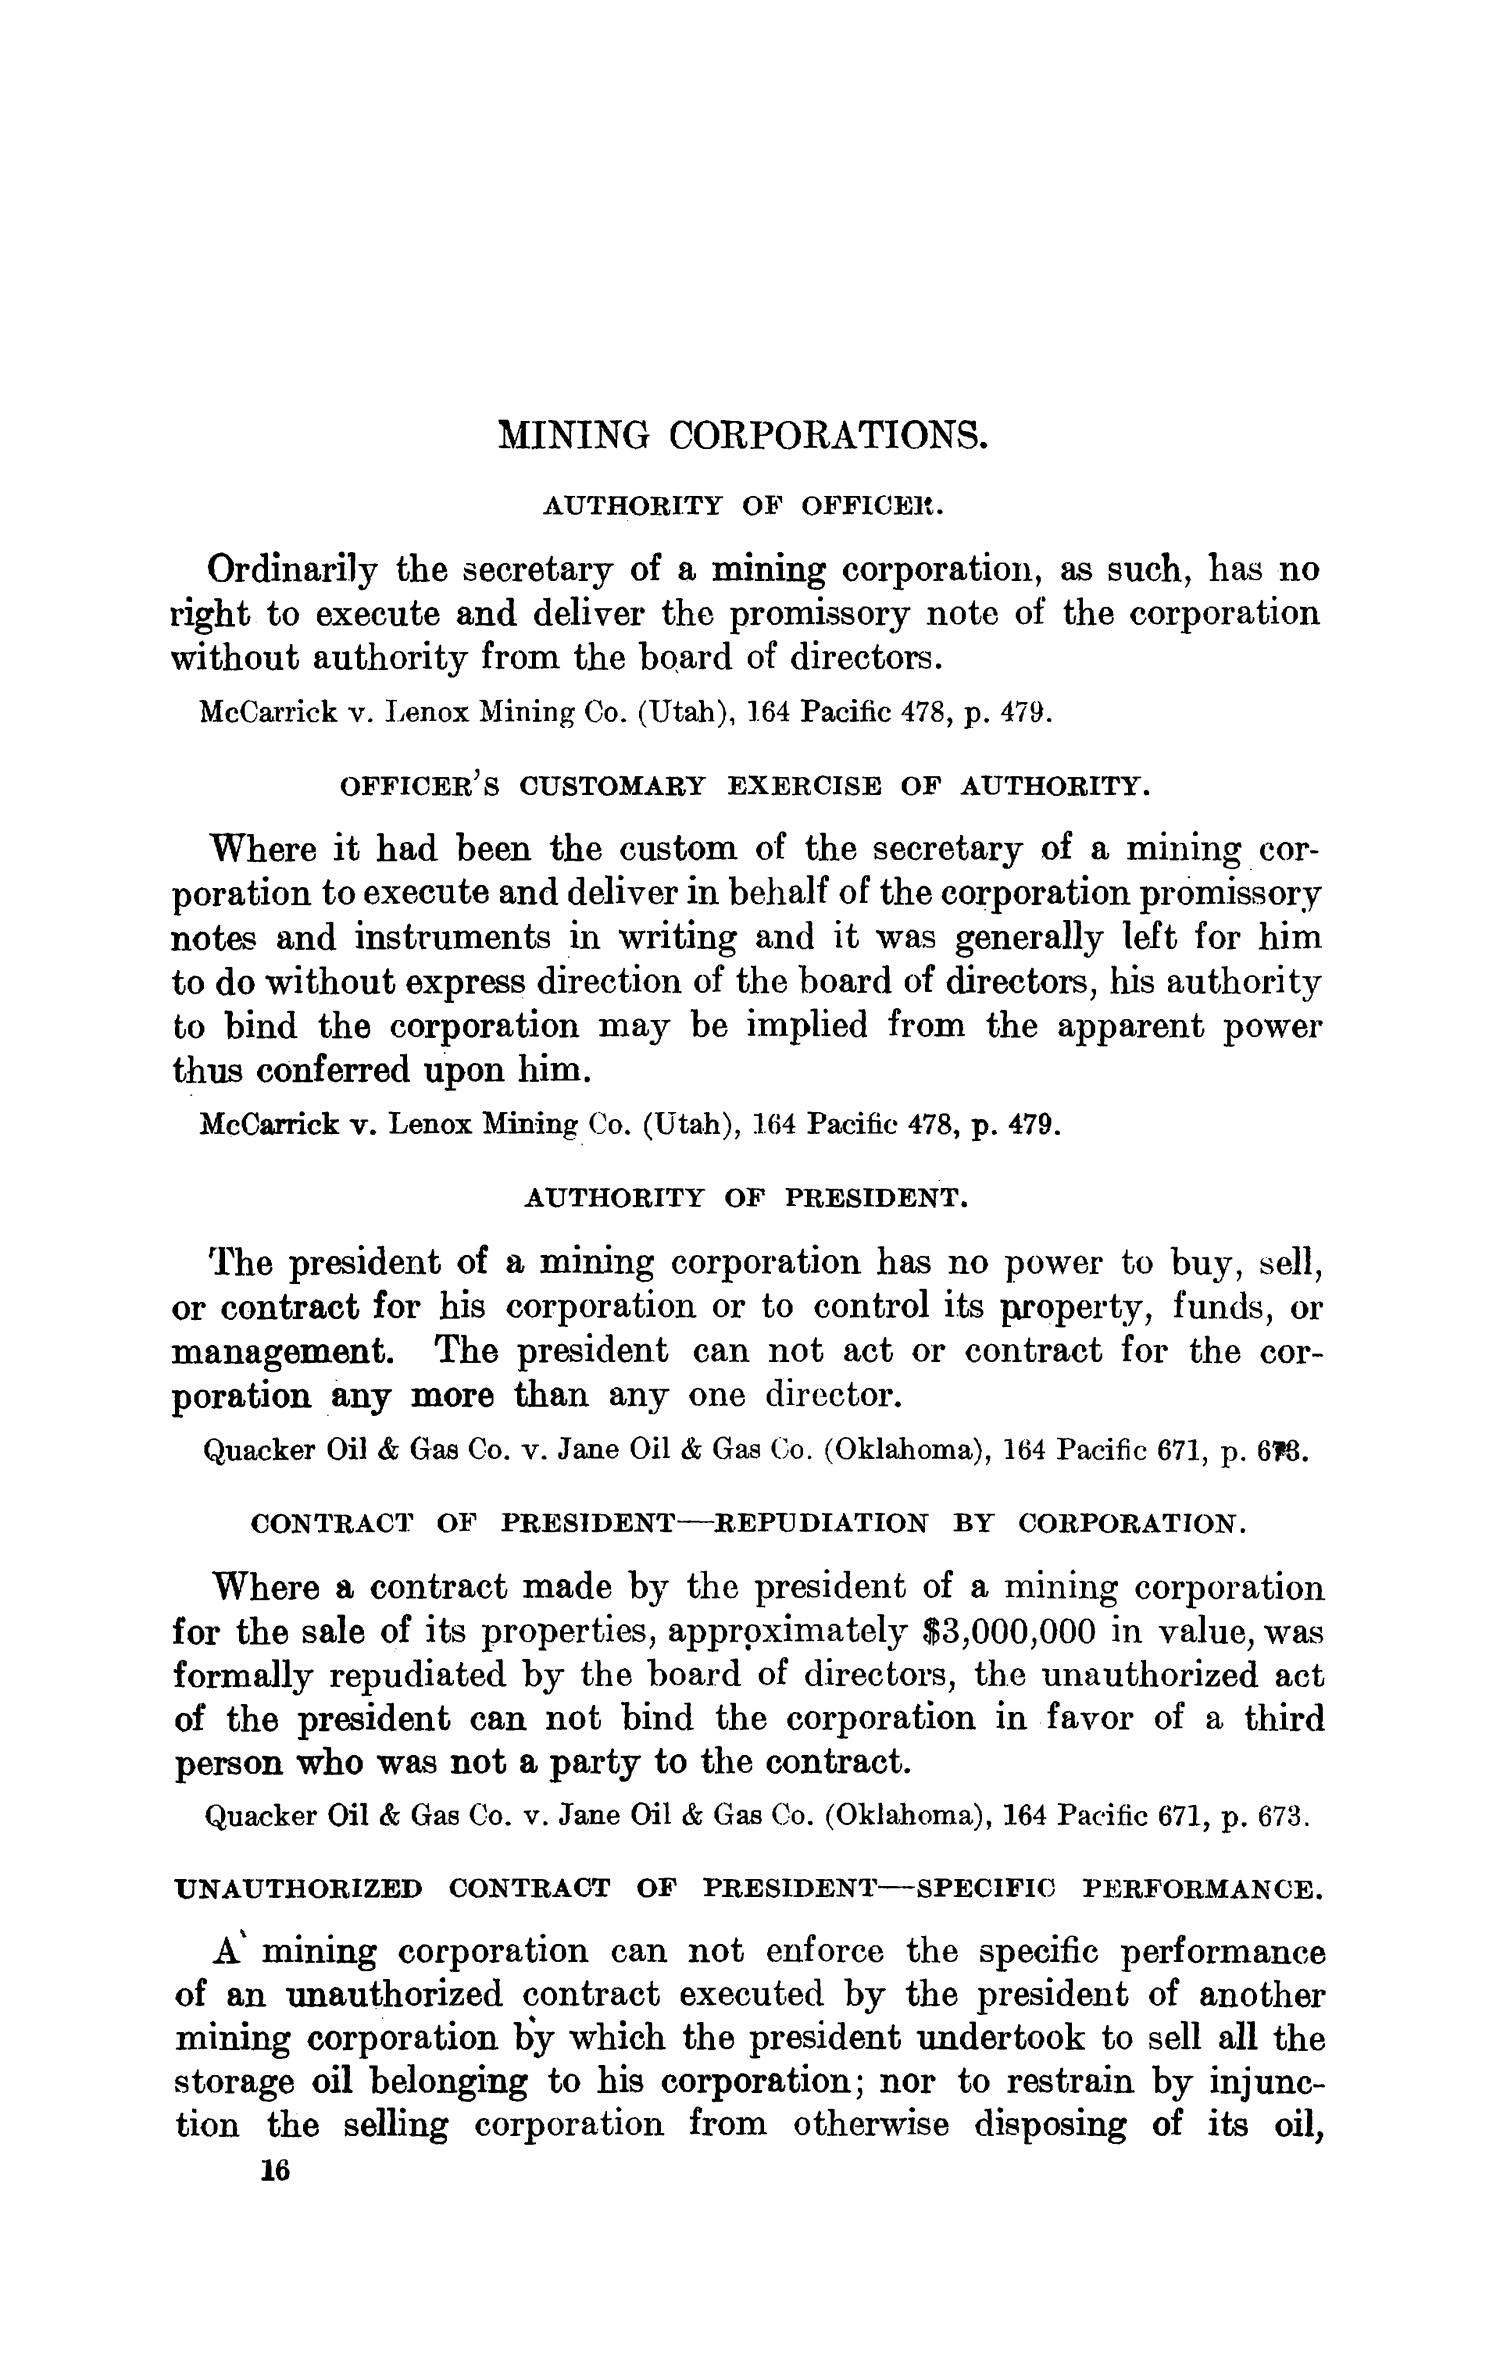 Abstracts of Current Decisions on Mines and Mining: May to August, 1917                                                                                                      16